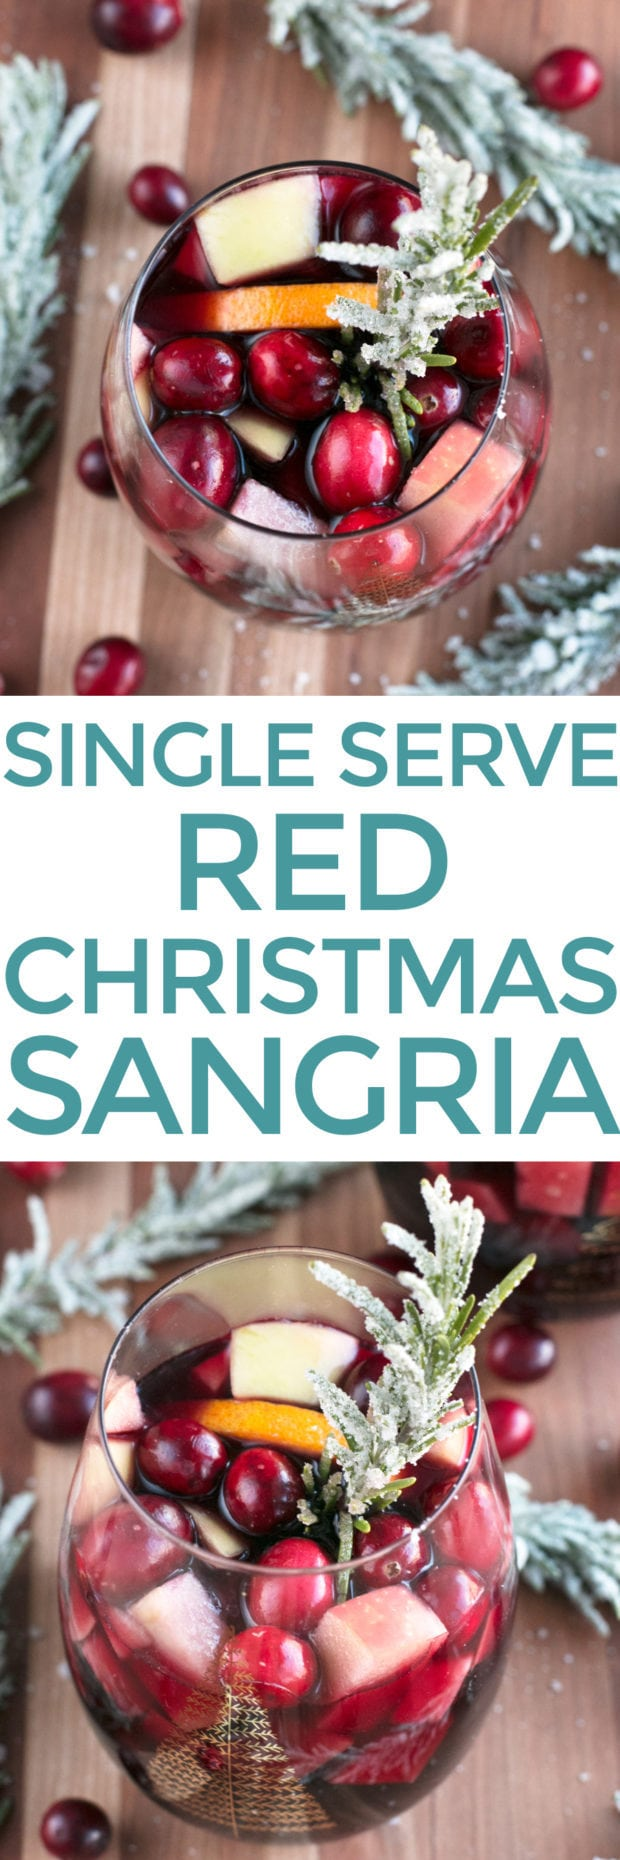 Red Christmas Single Serve Sangria | cakenknife.com #christmas #christmassangria #holidaysangria #redsangria #sangria #wine #21andup